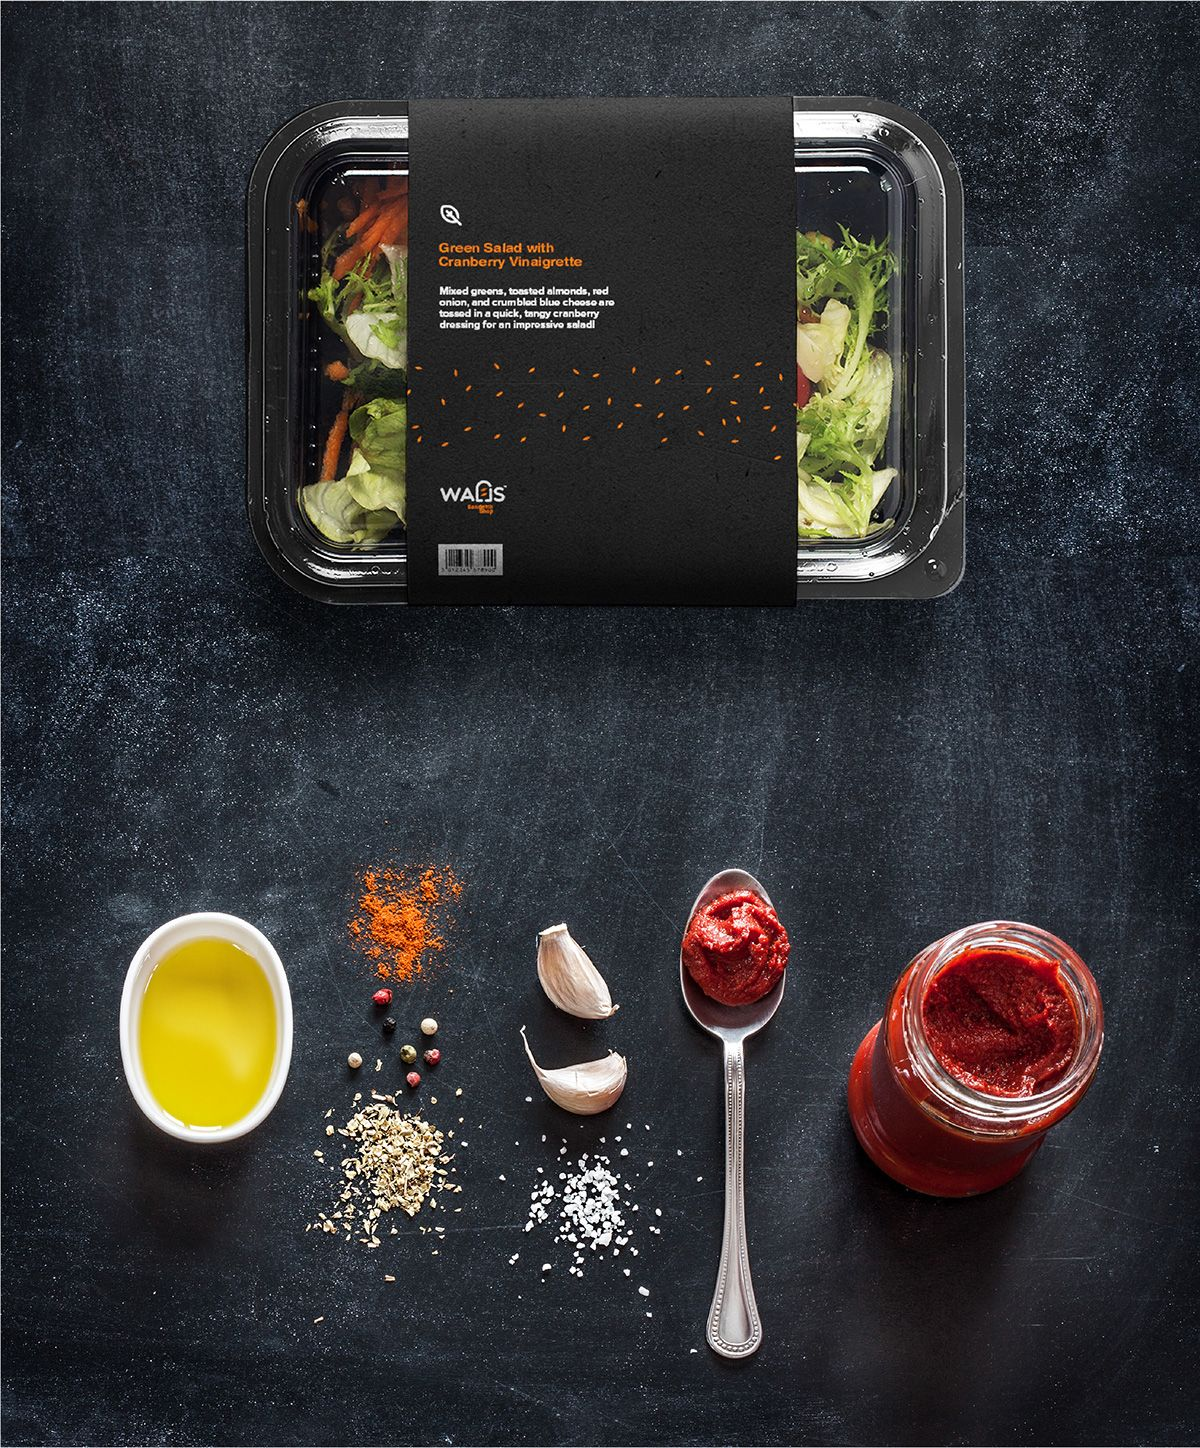 WALLS Fresh eats on the go. A new business catering brand